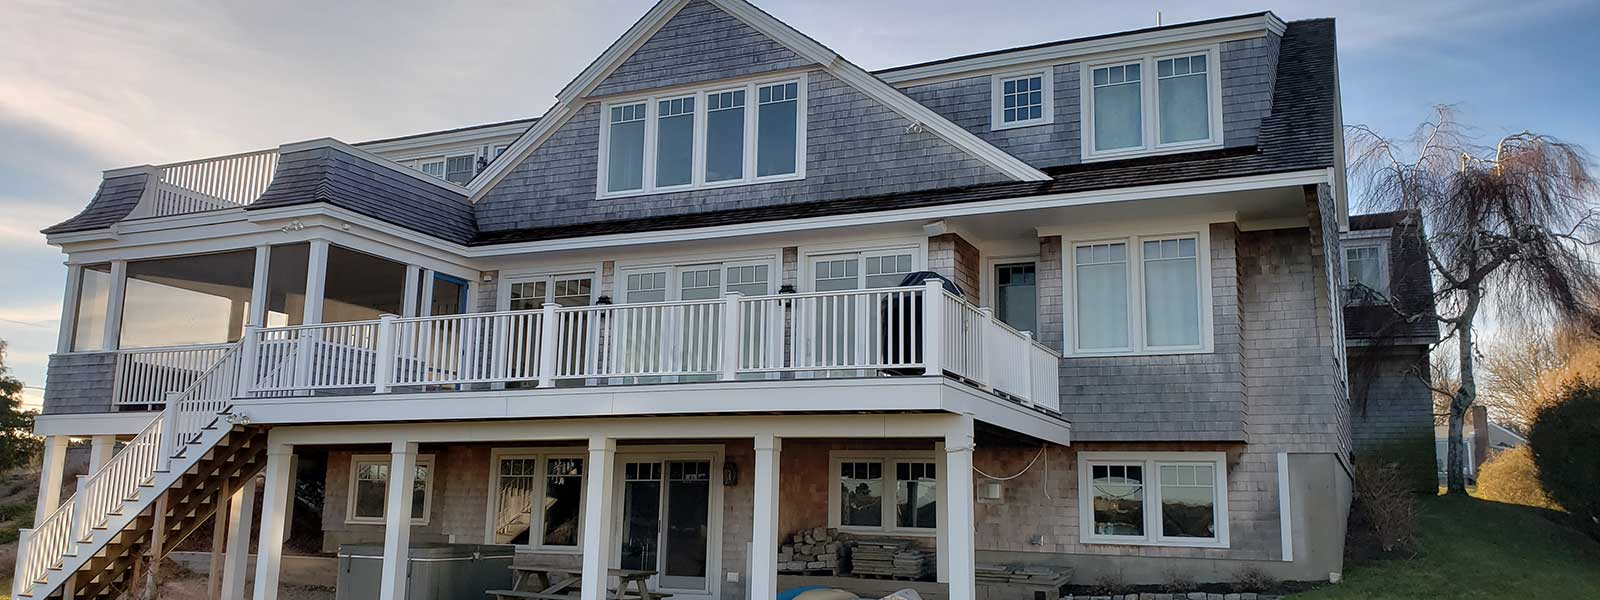 Chatham MA home builder